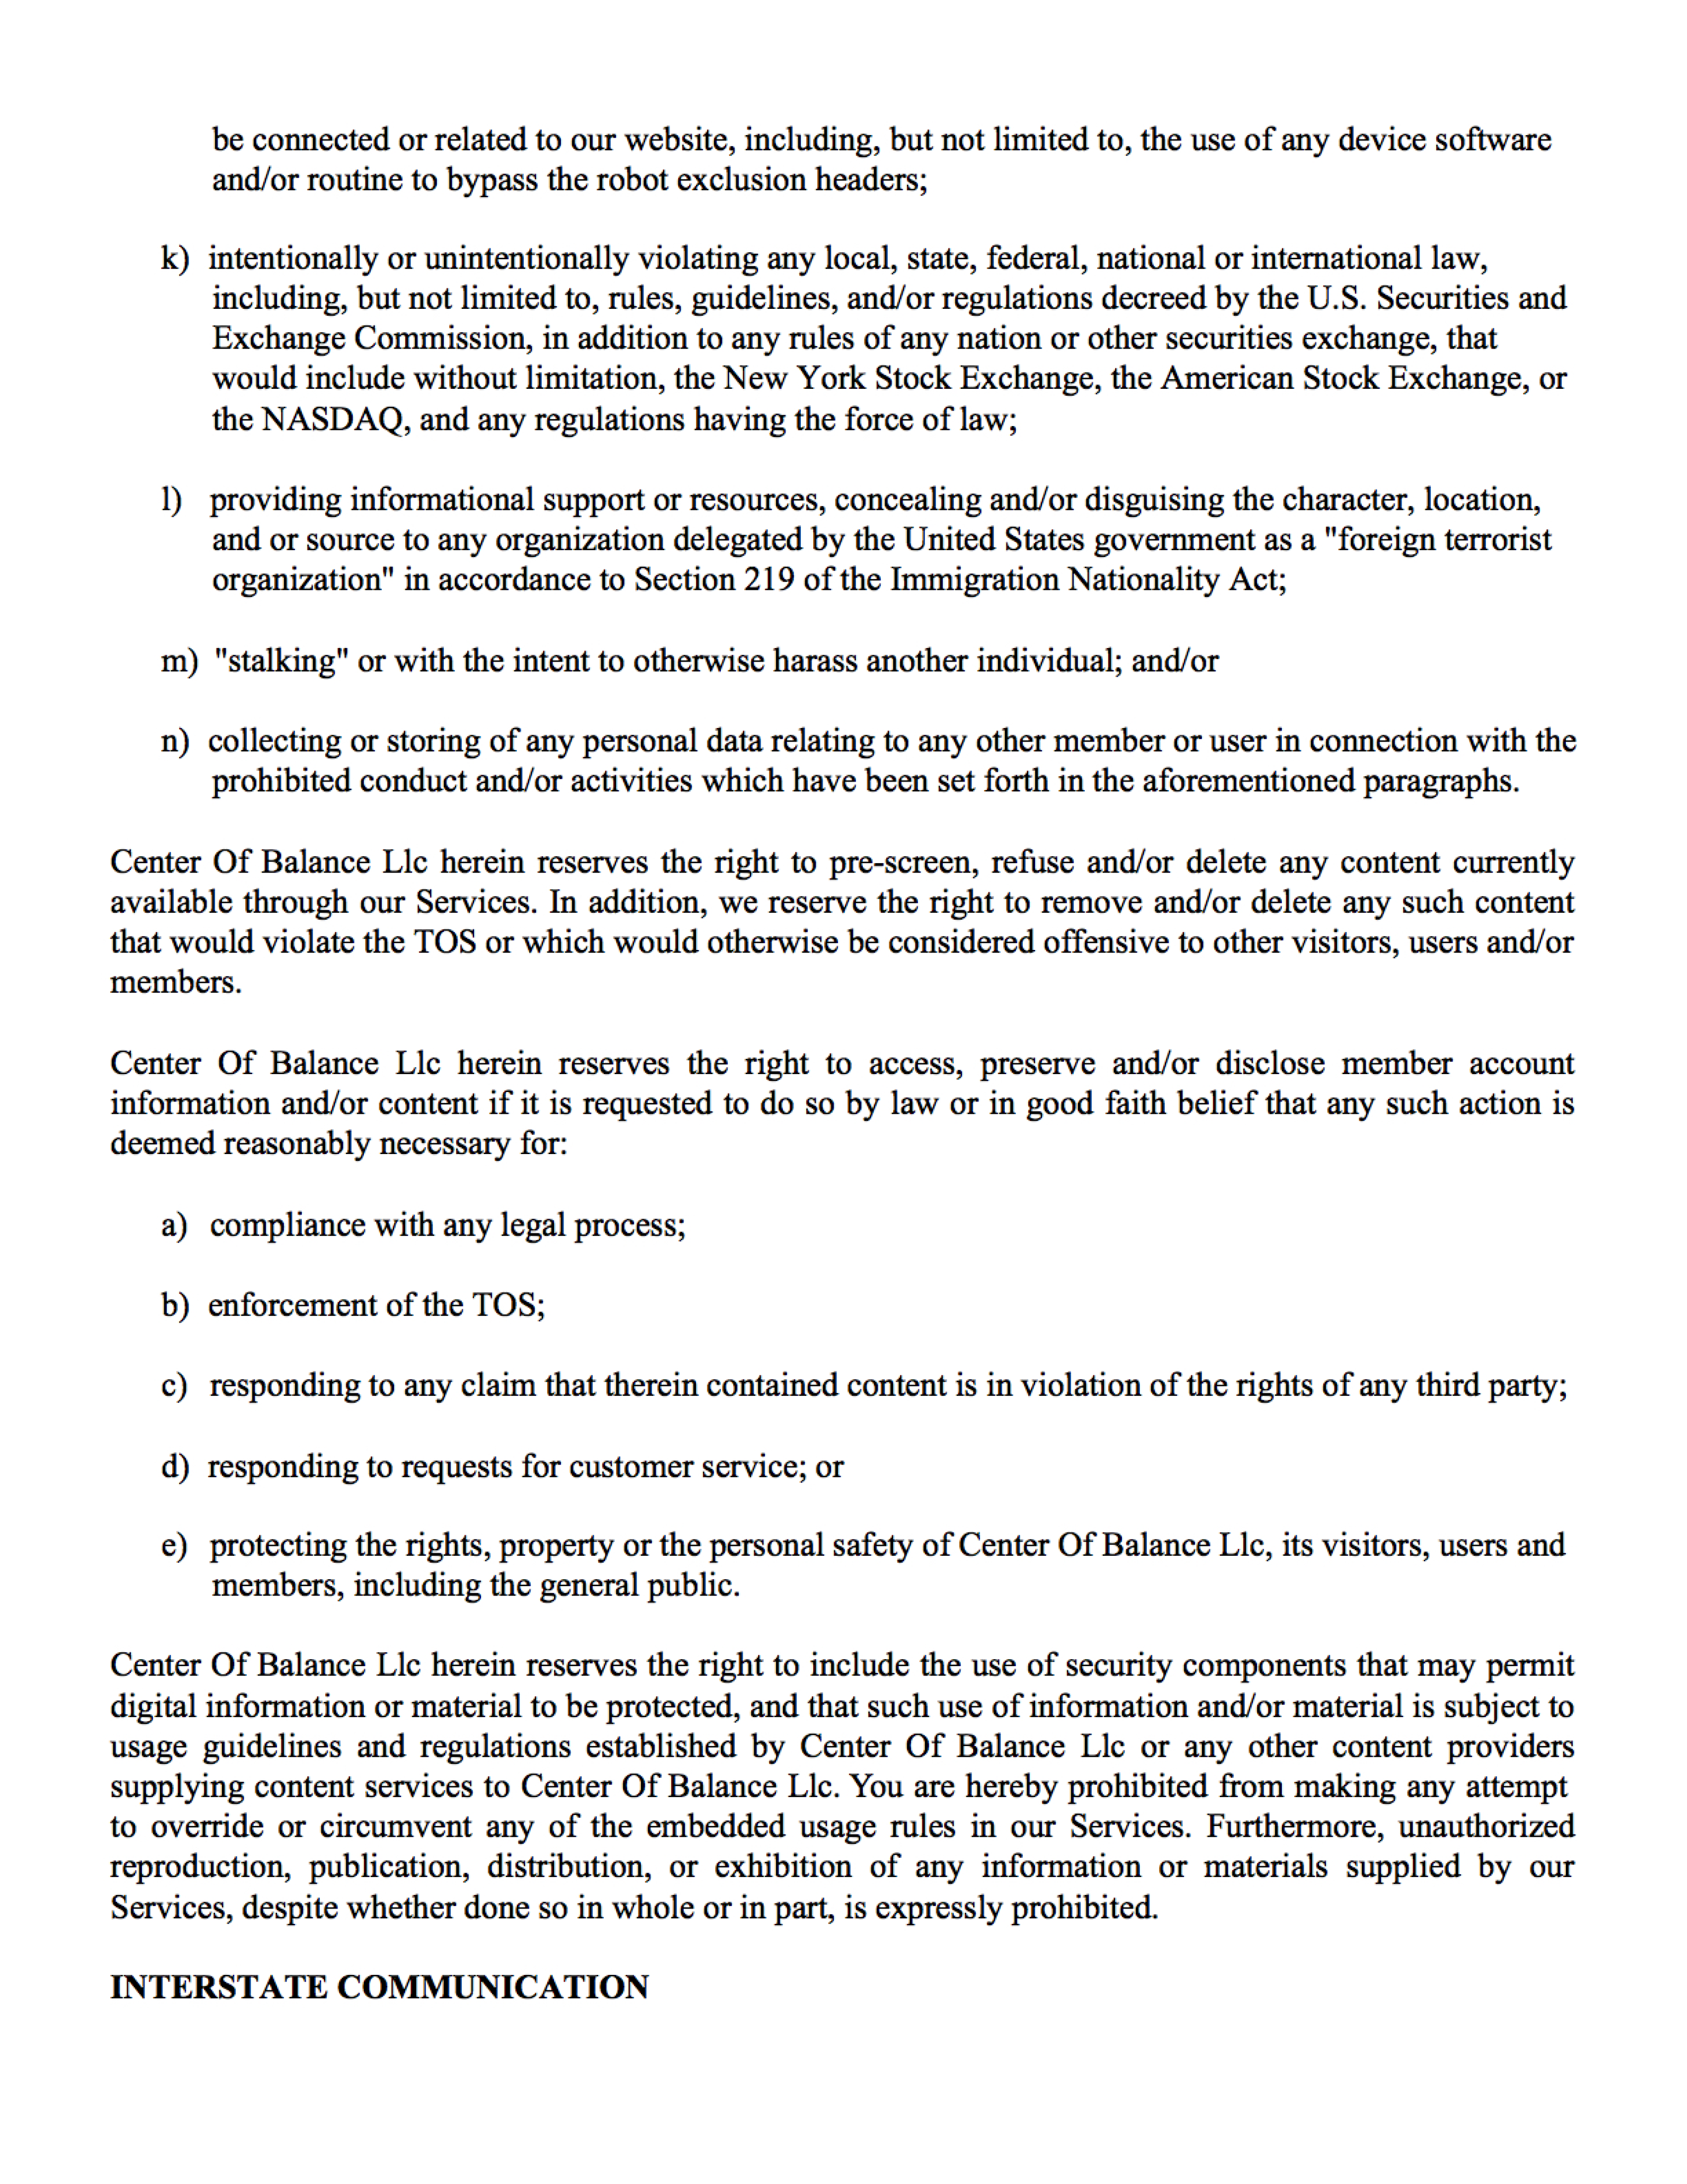 terms-and-conditions-b-page-04.png